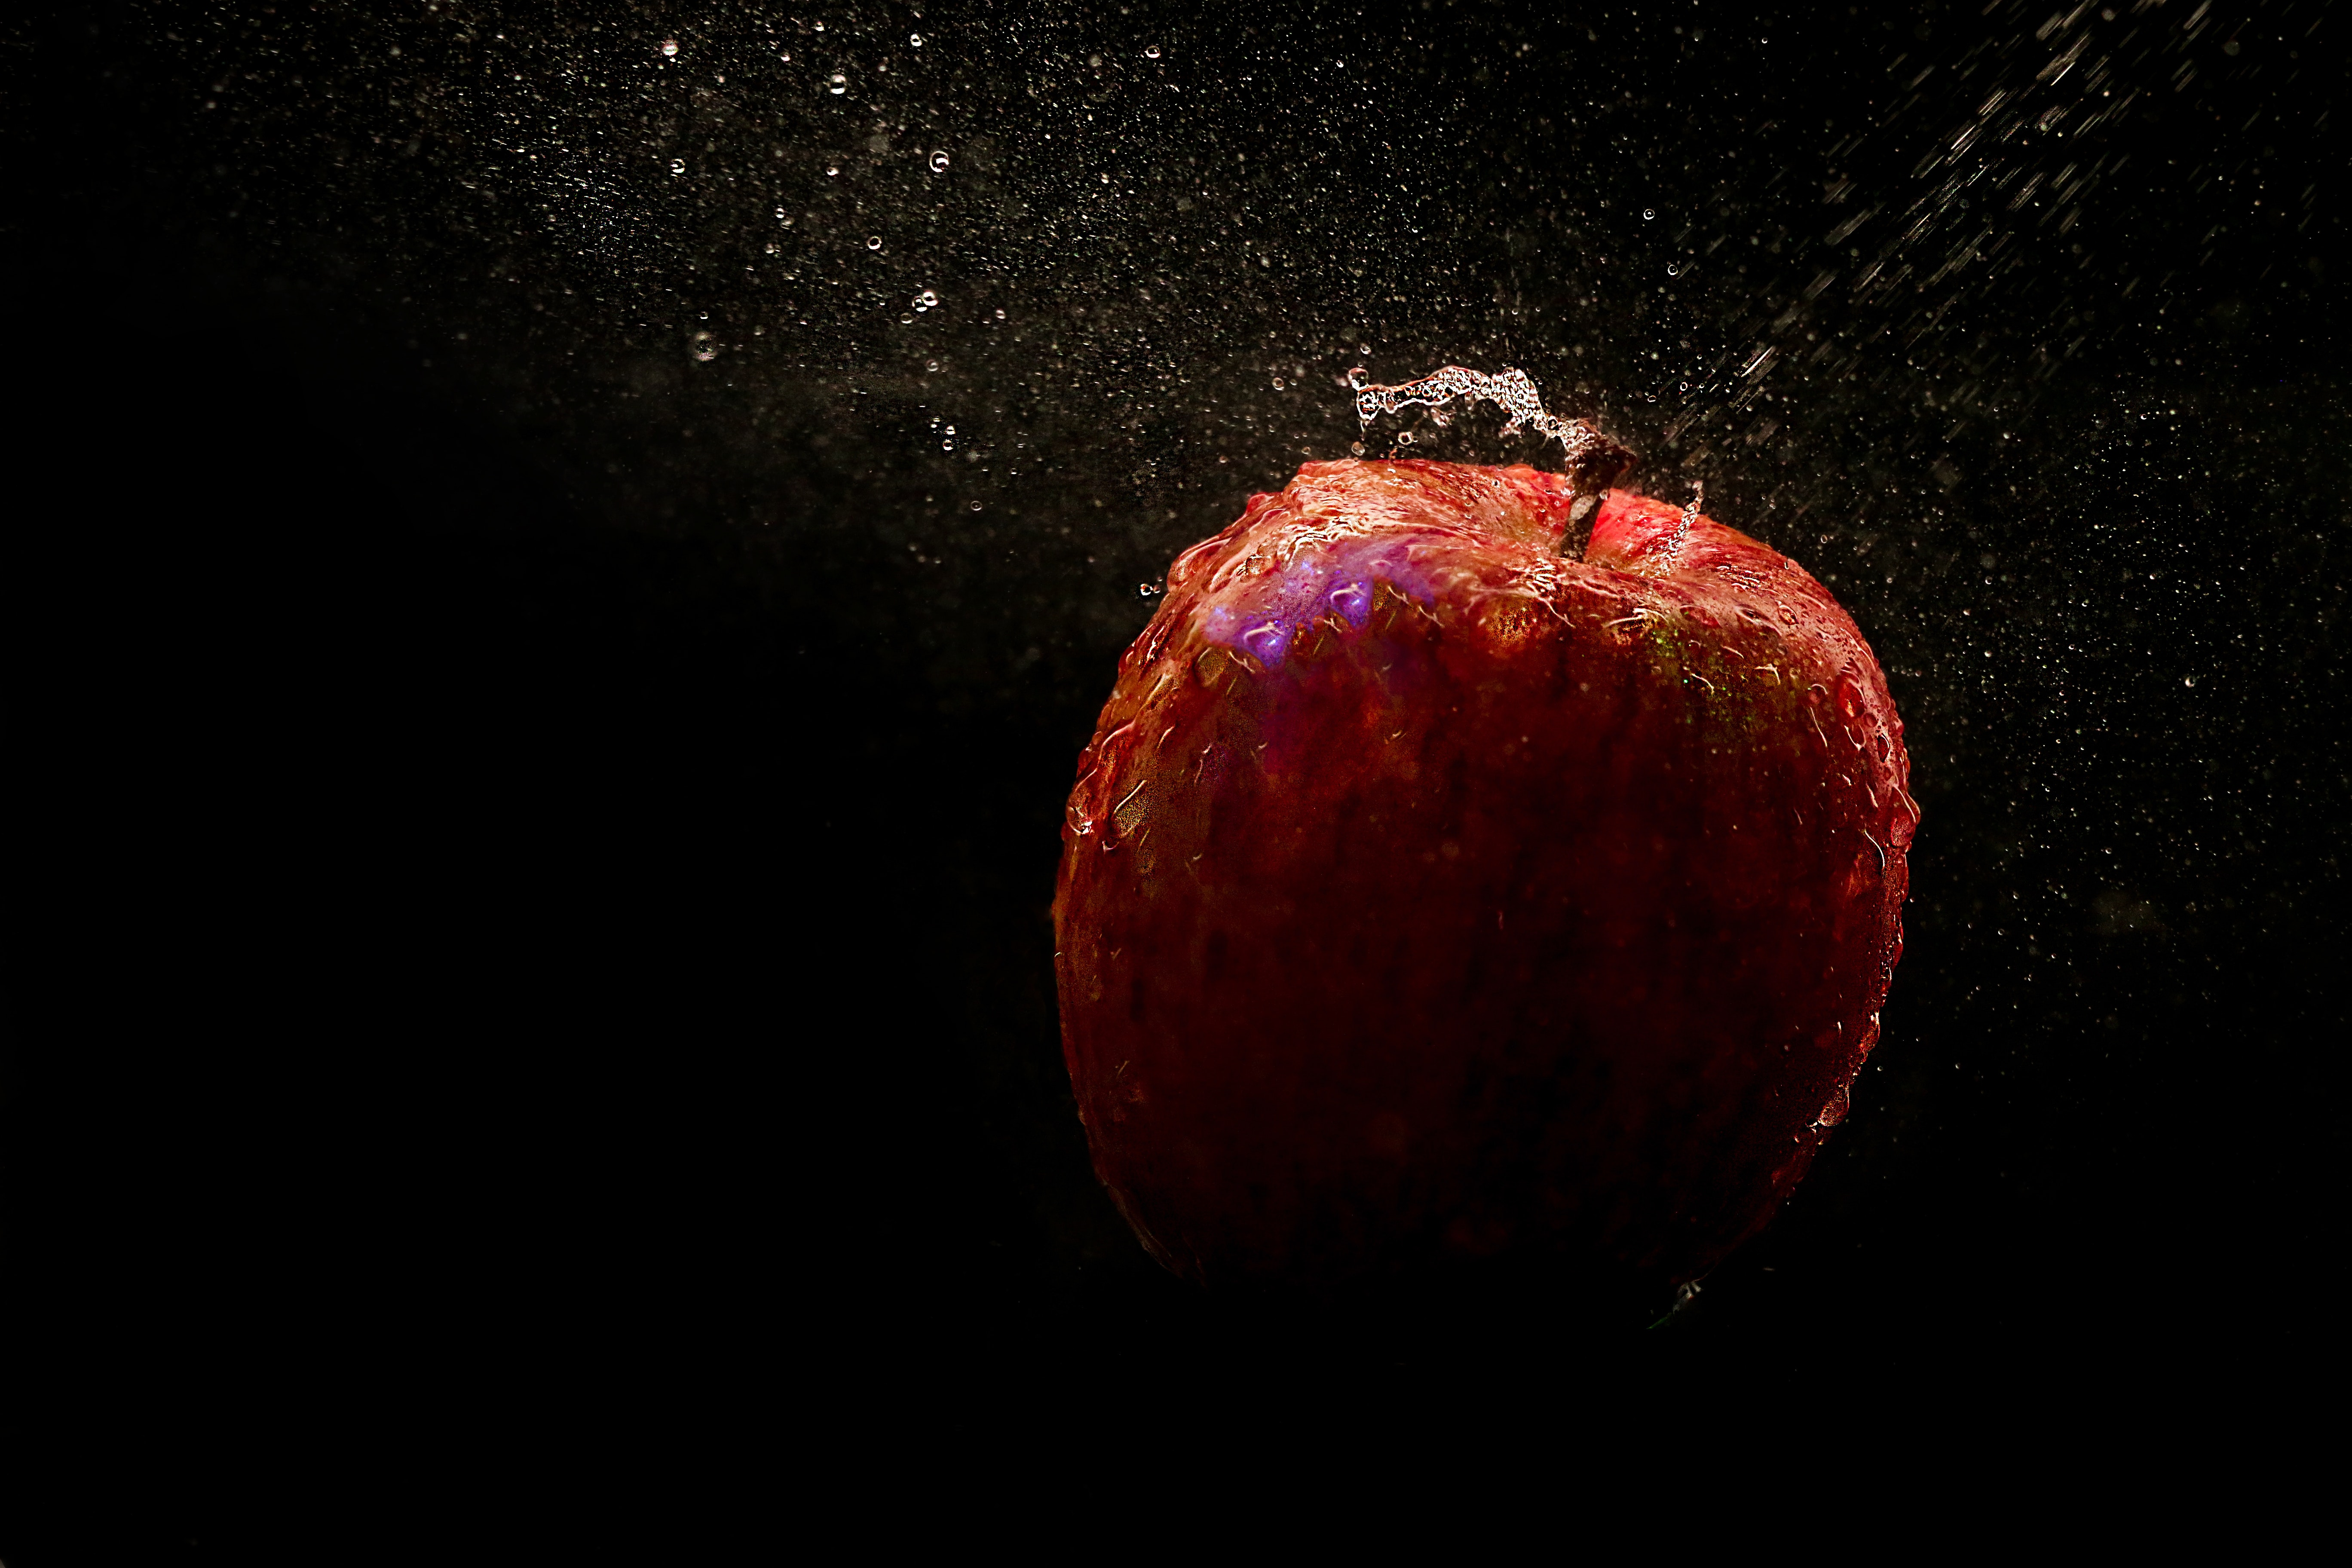 Time lapse photography of falling red apple